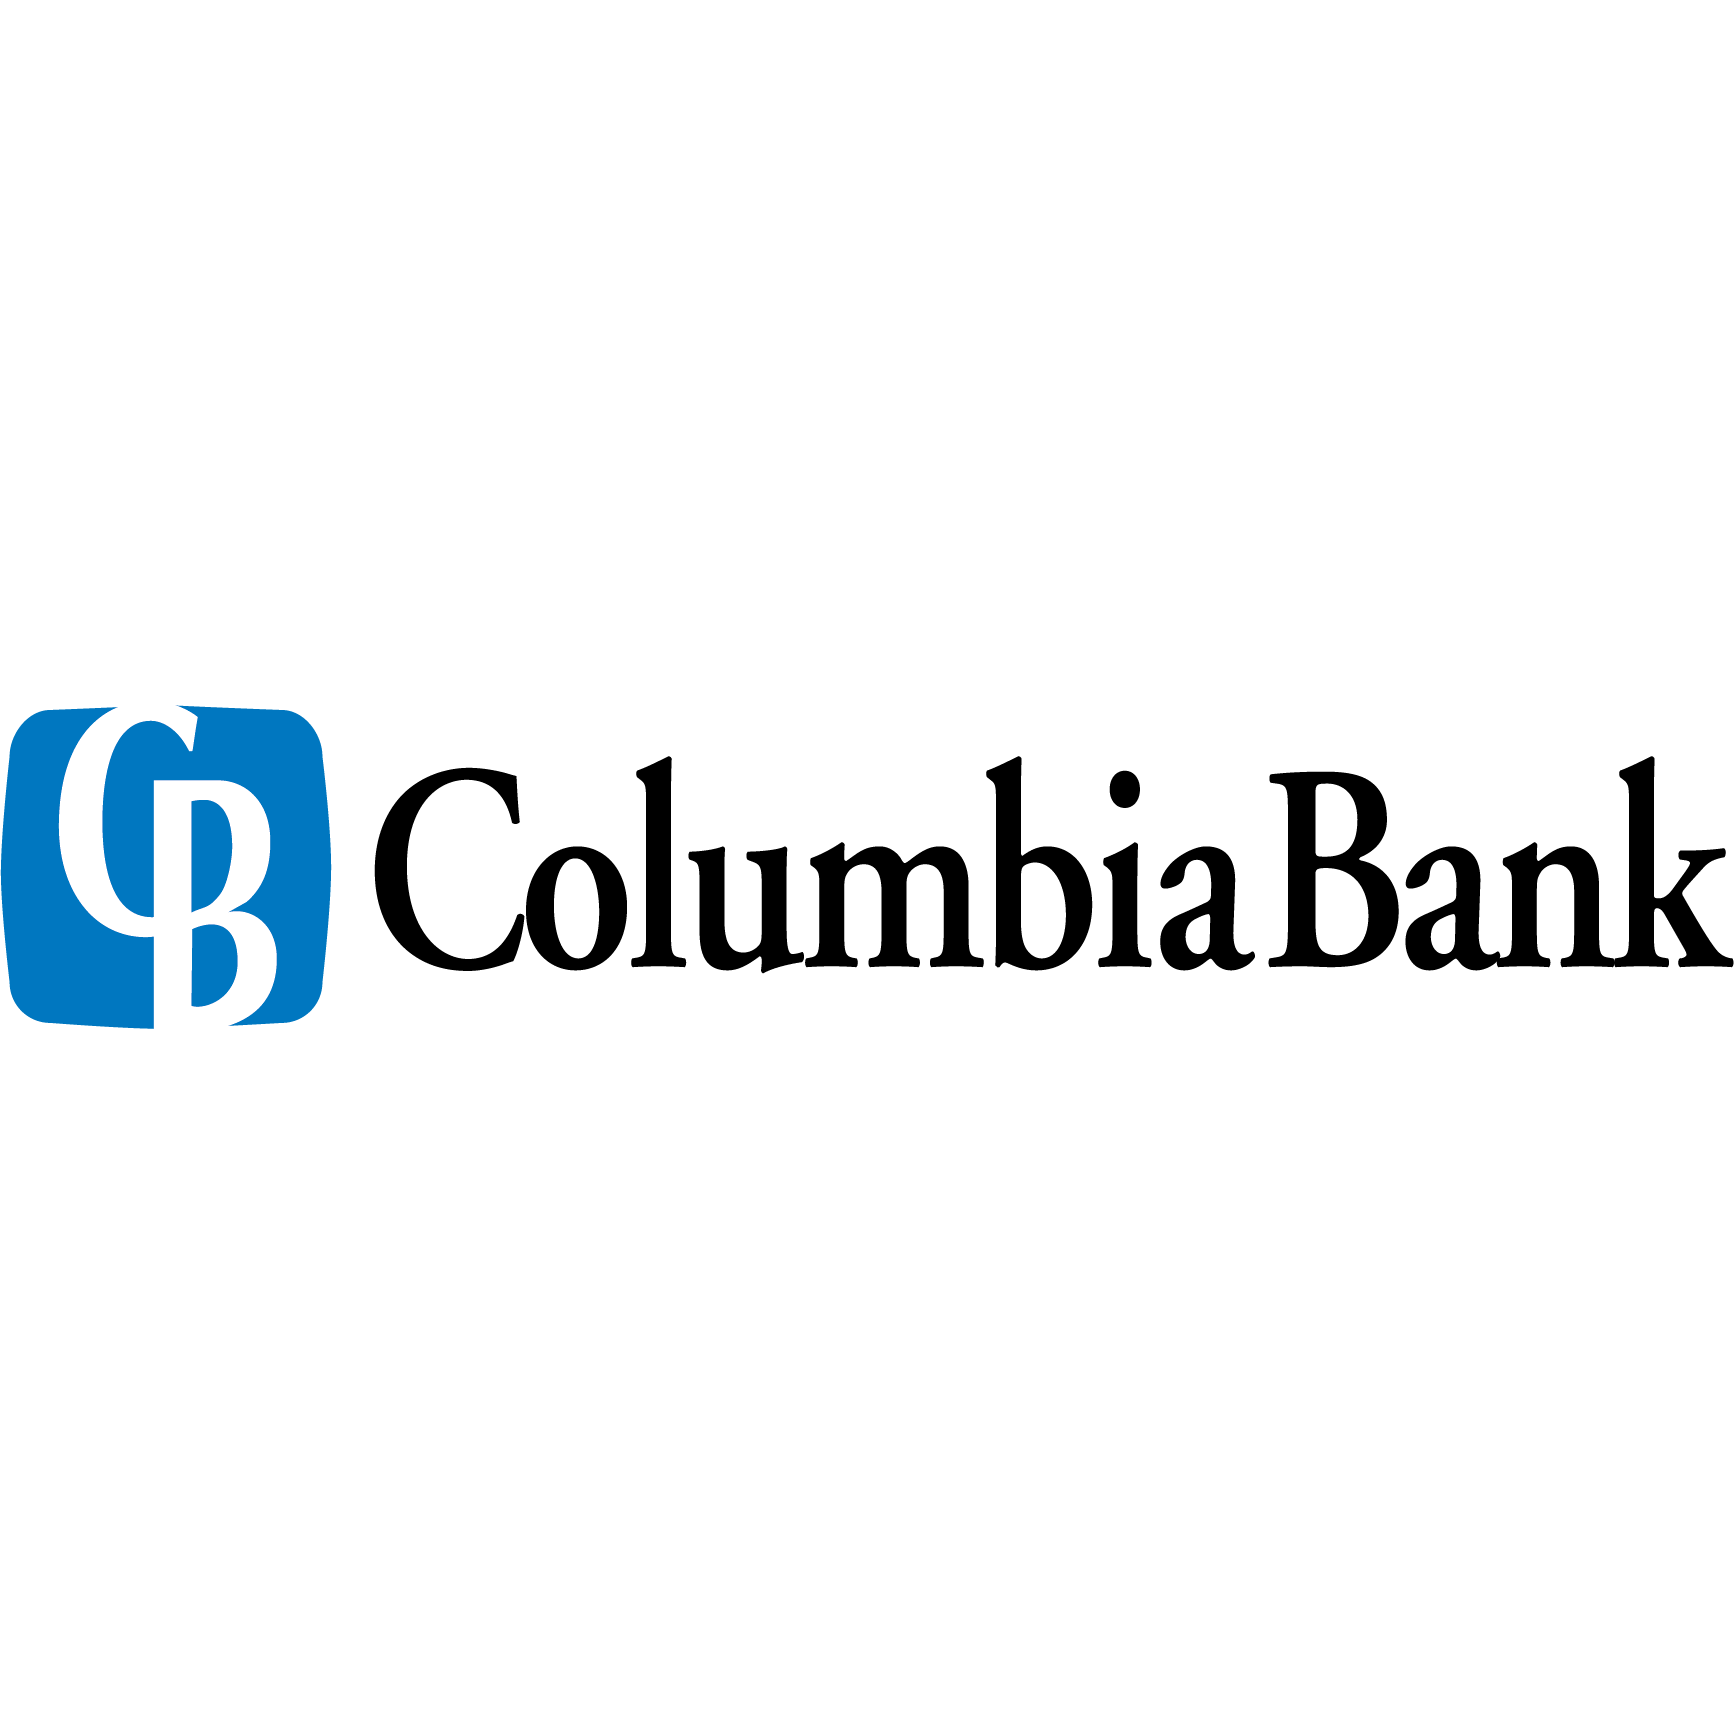 Columbia Bank - Everett, WA - Banking